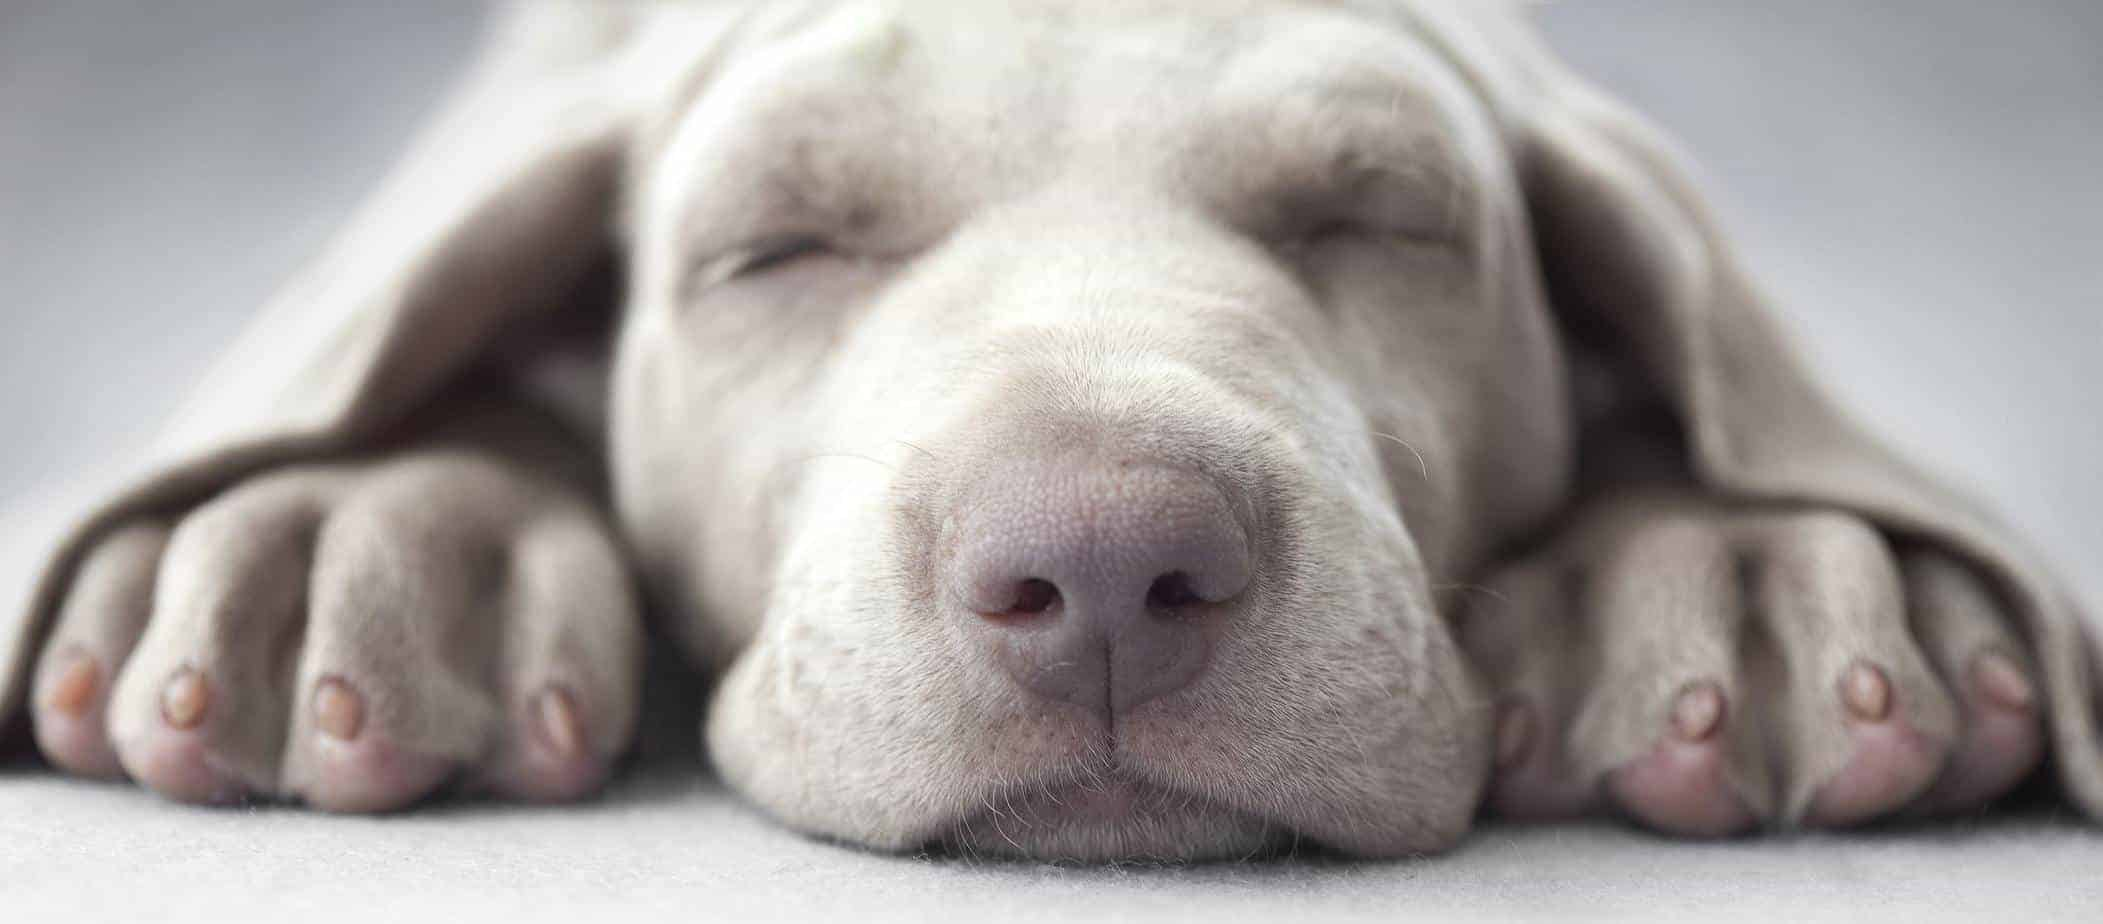 Dog sleep behavior: Most dogs adjust to be awake when you are